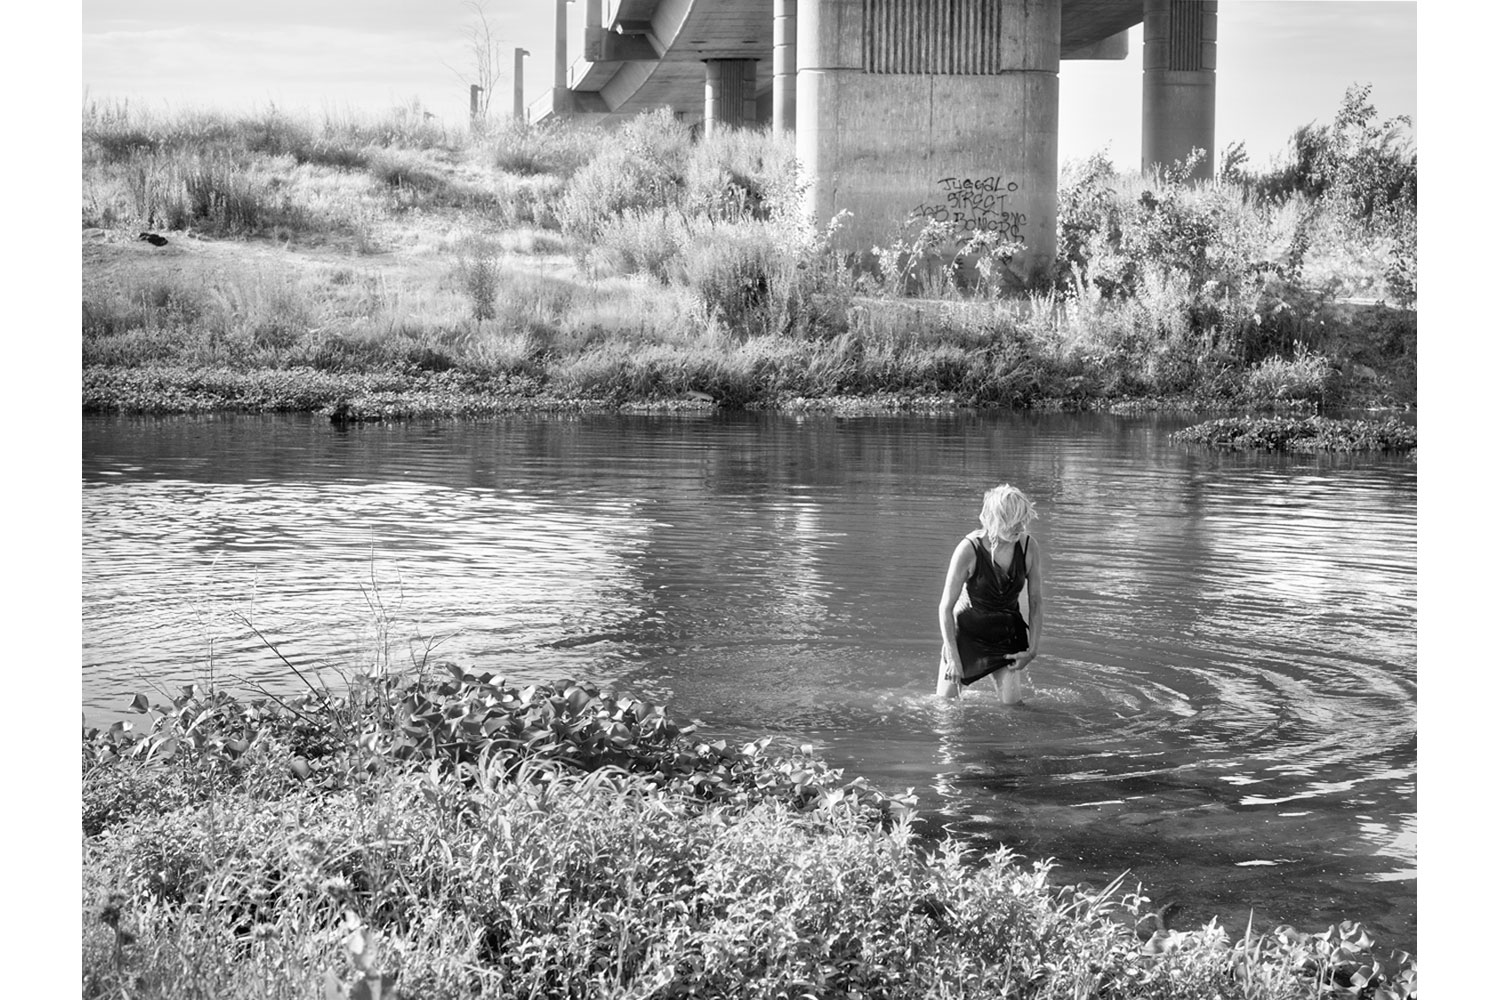 'Deb Soaking Wet, Tuolumne River, Modesto, CA, 2013,' from Kathy Grannan's The 99, published by The Fraenkel Gallery and Salon 94